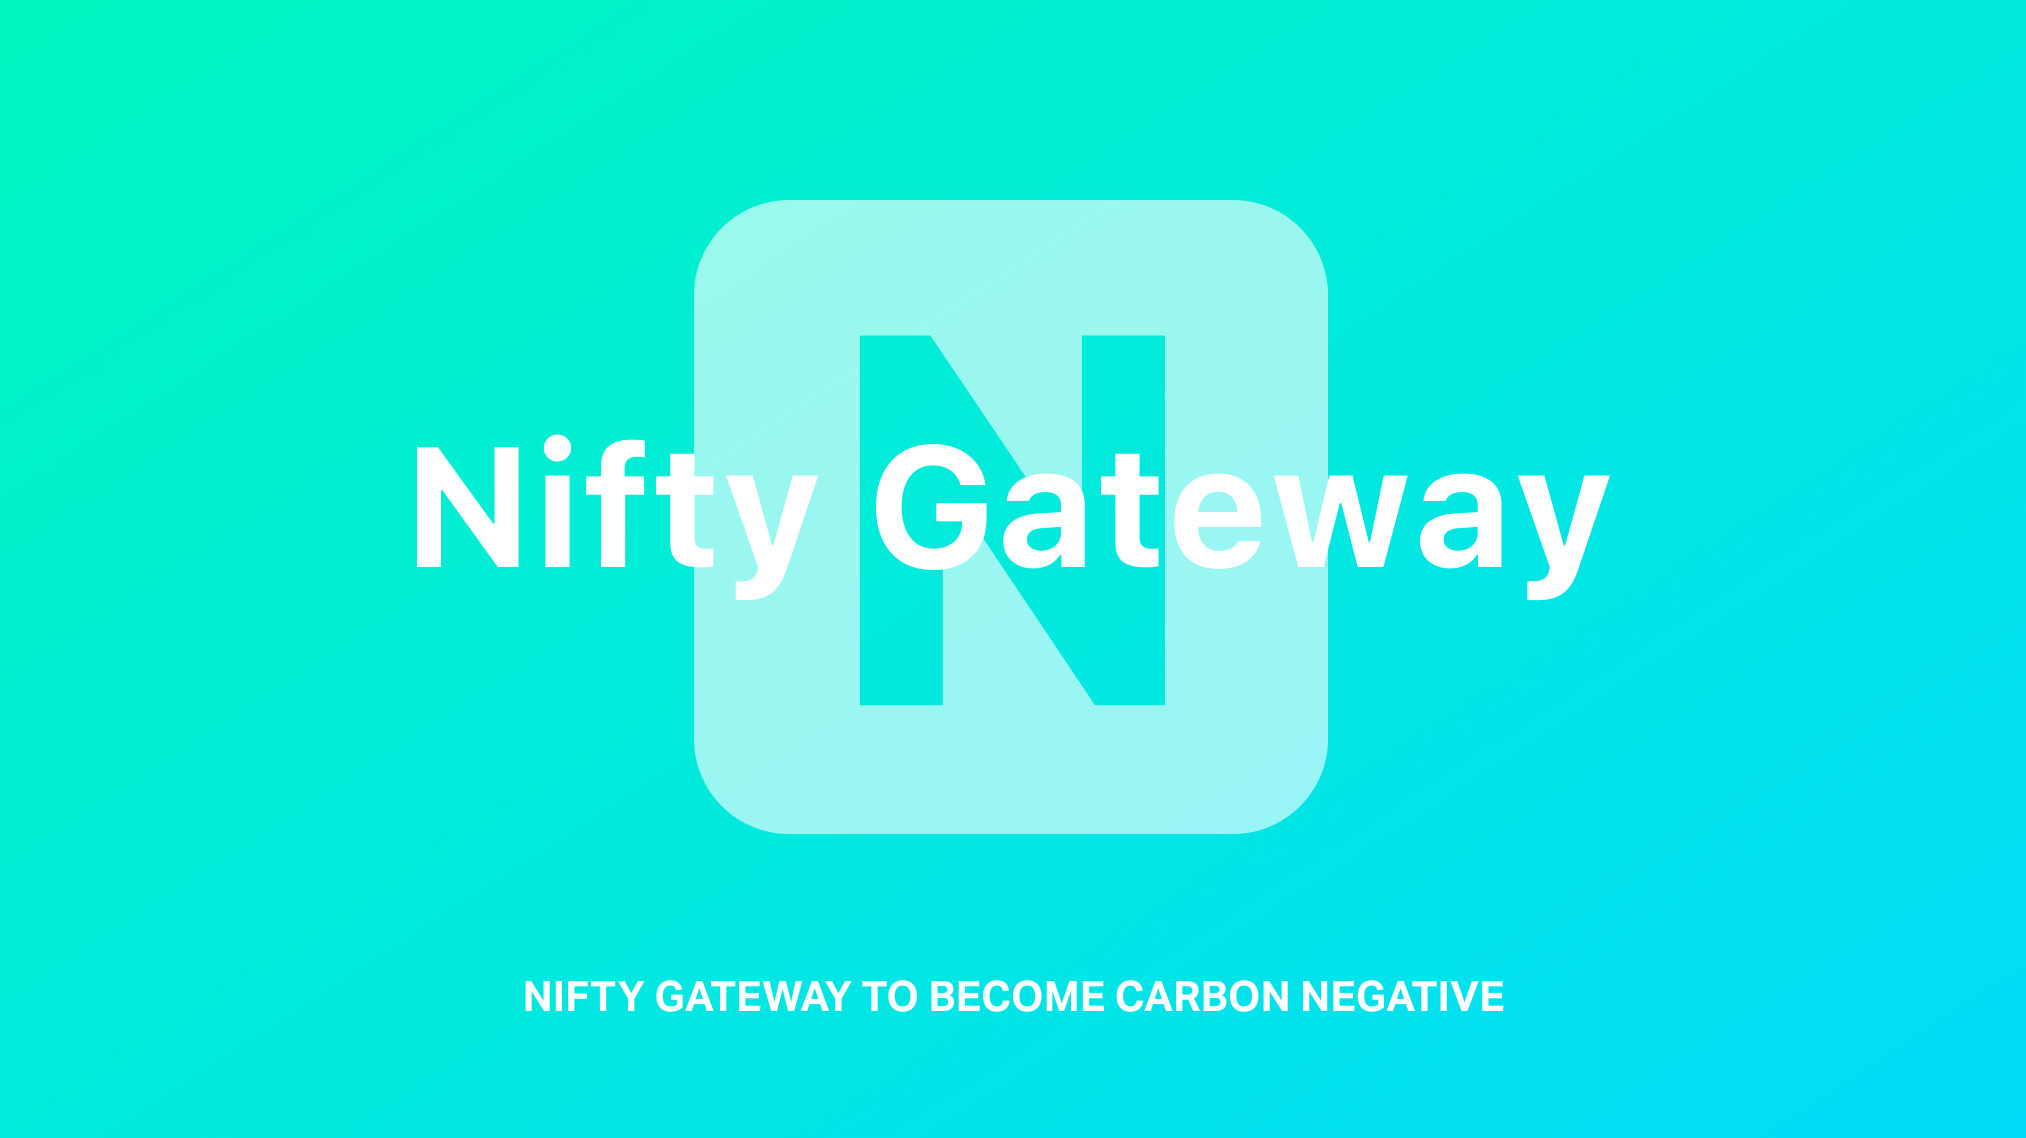 Nifty Gateway announced its plans to become carbon negative.